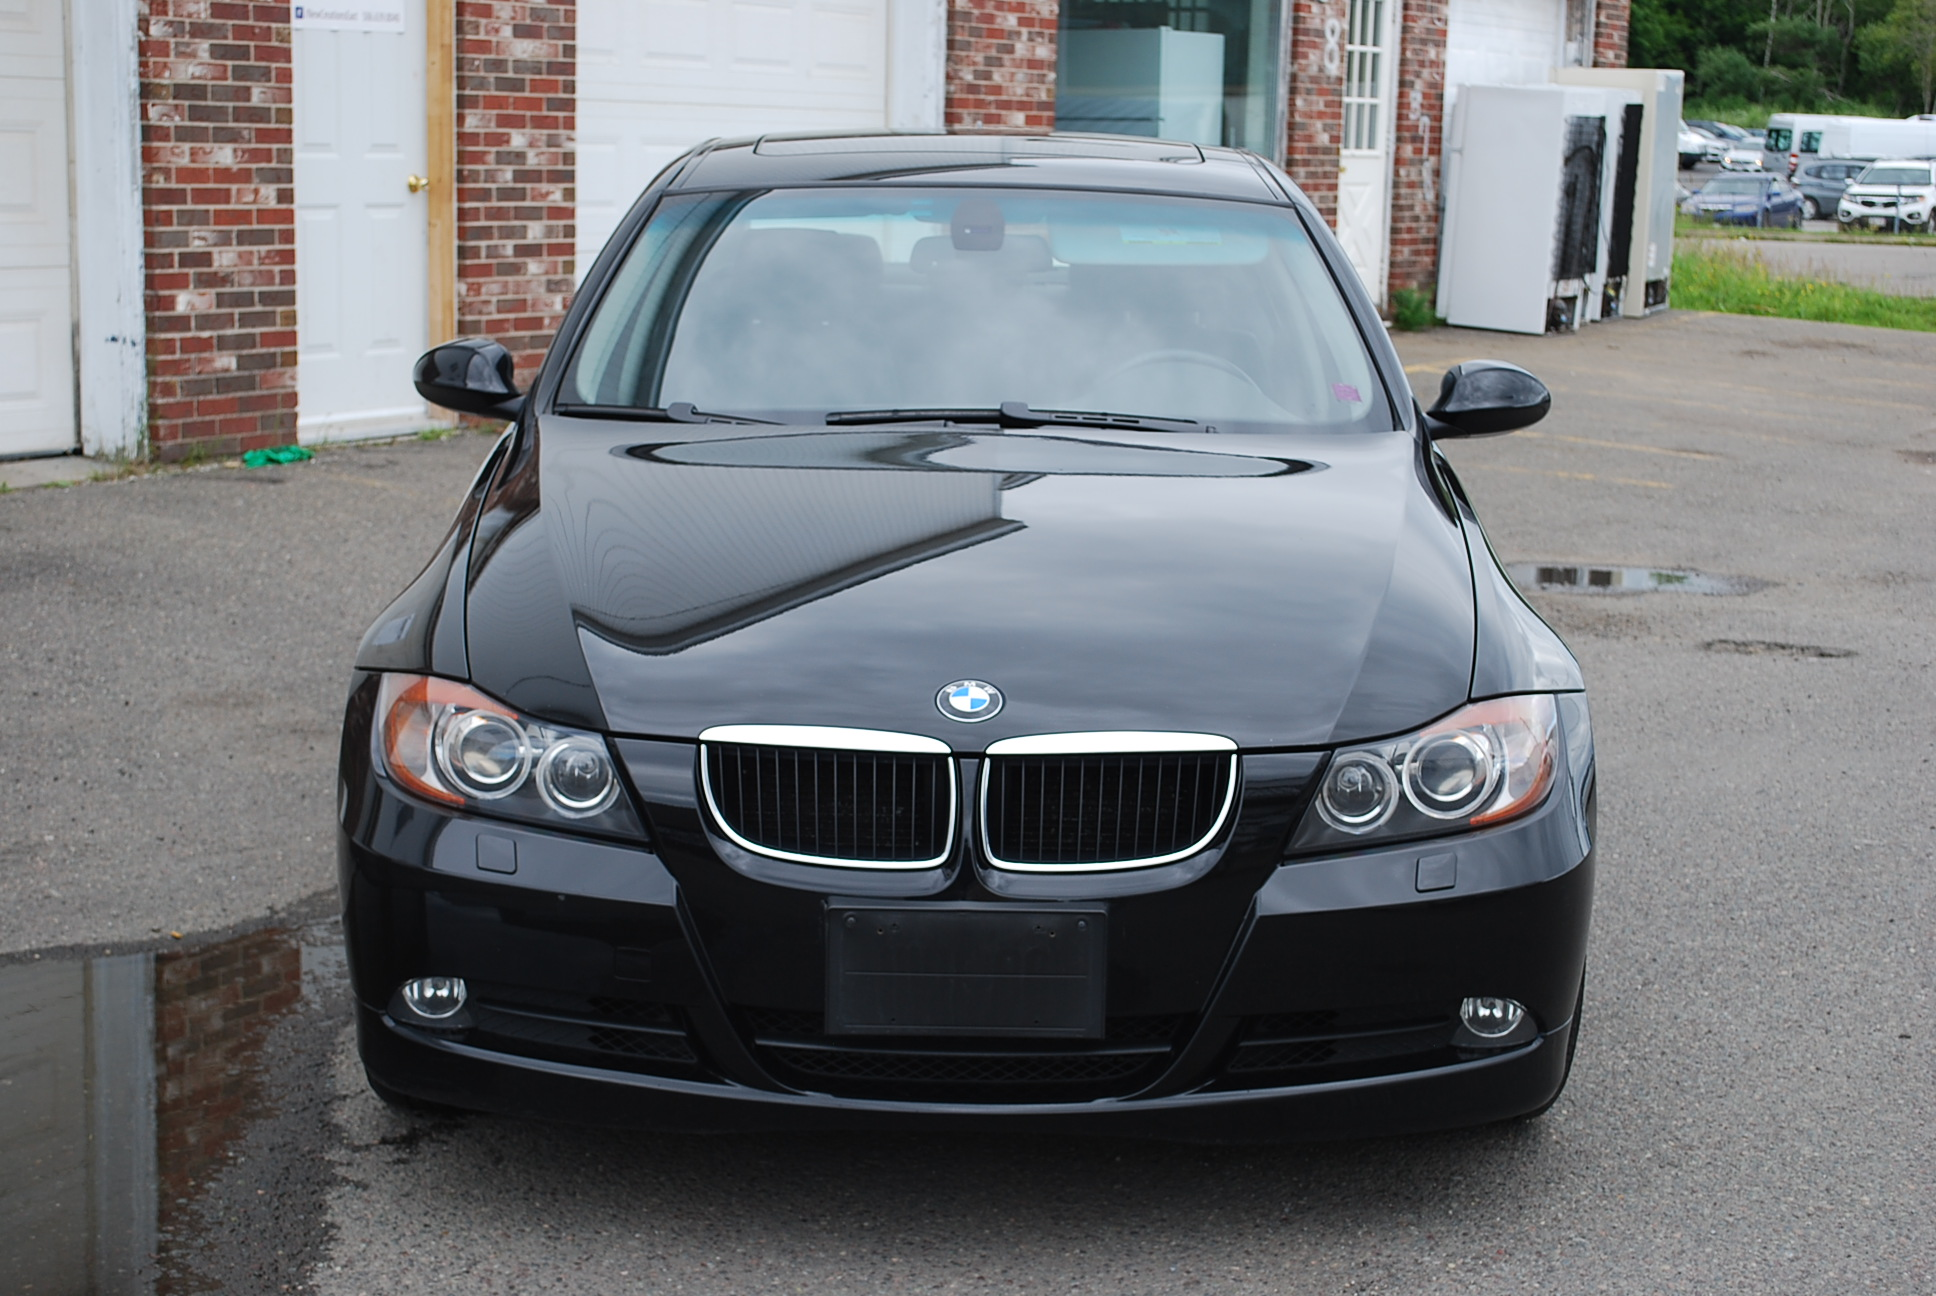 Used 2006 Bmw 325xi Awd For Sale In Saint John Nb